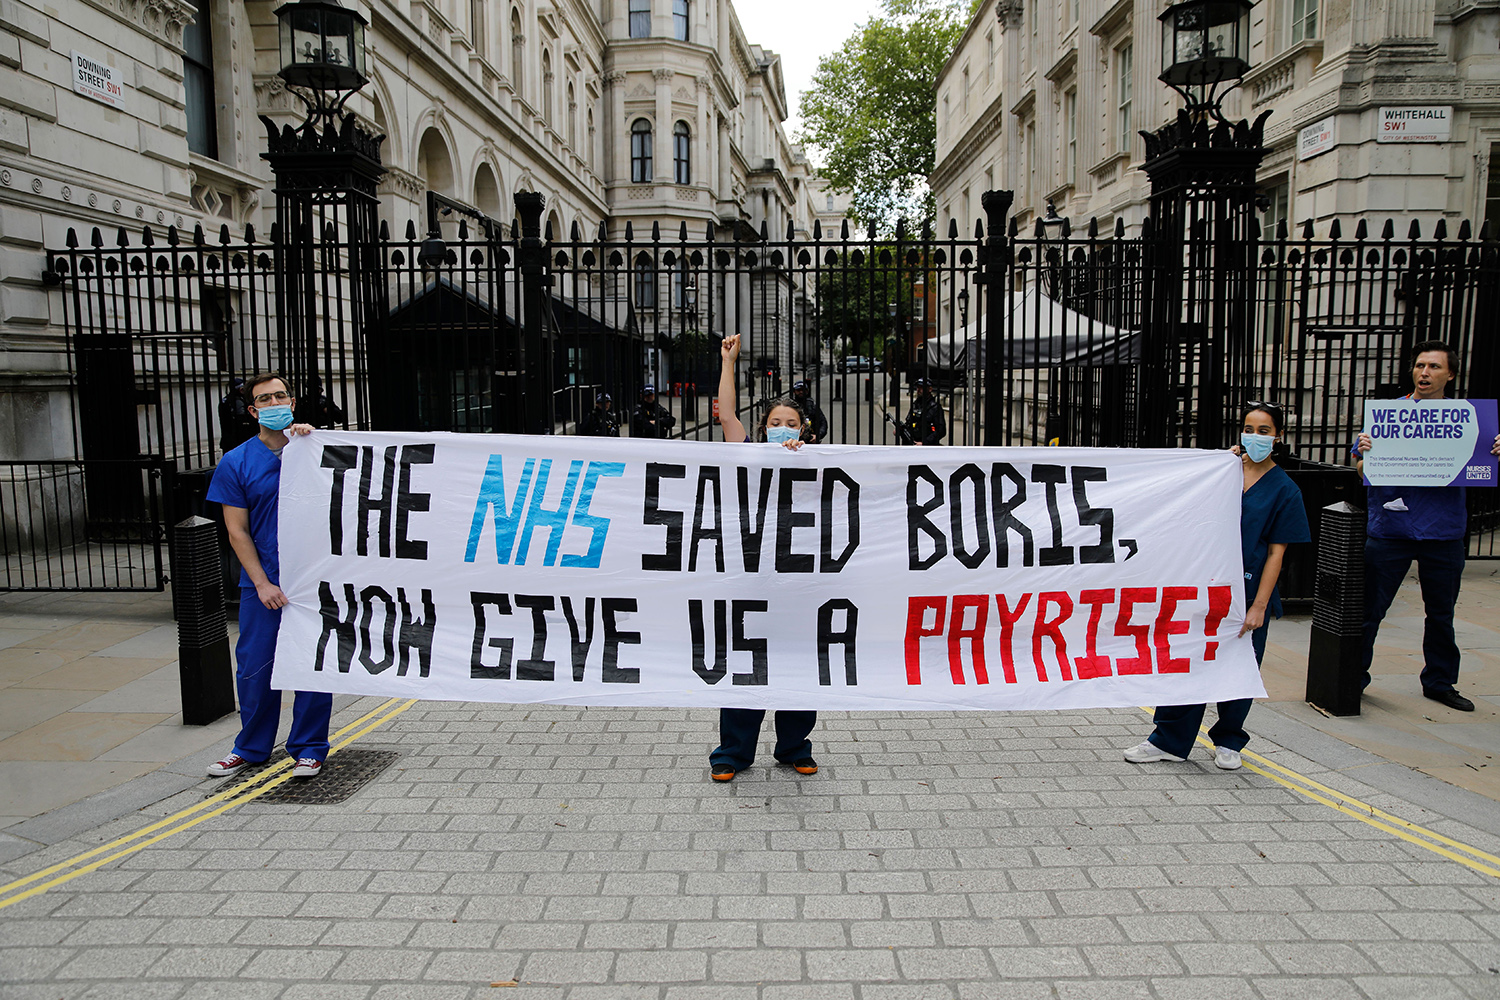 Nurses who work at central London hospitals call for improved conditions and pay as they protest outside Downing Street on International Nurses Day, May 13. TOLGA AKMEN/AFP via Getty Images